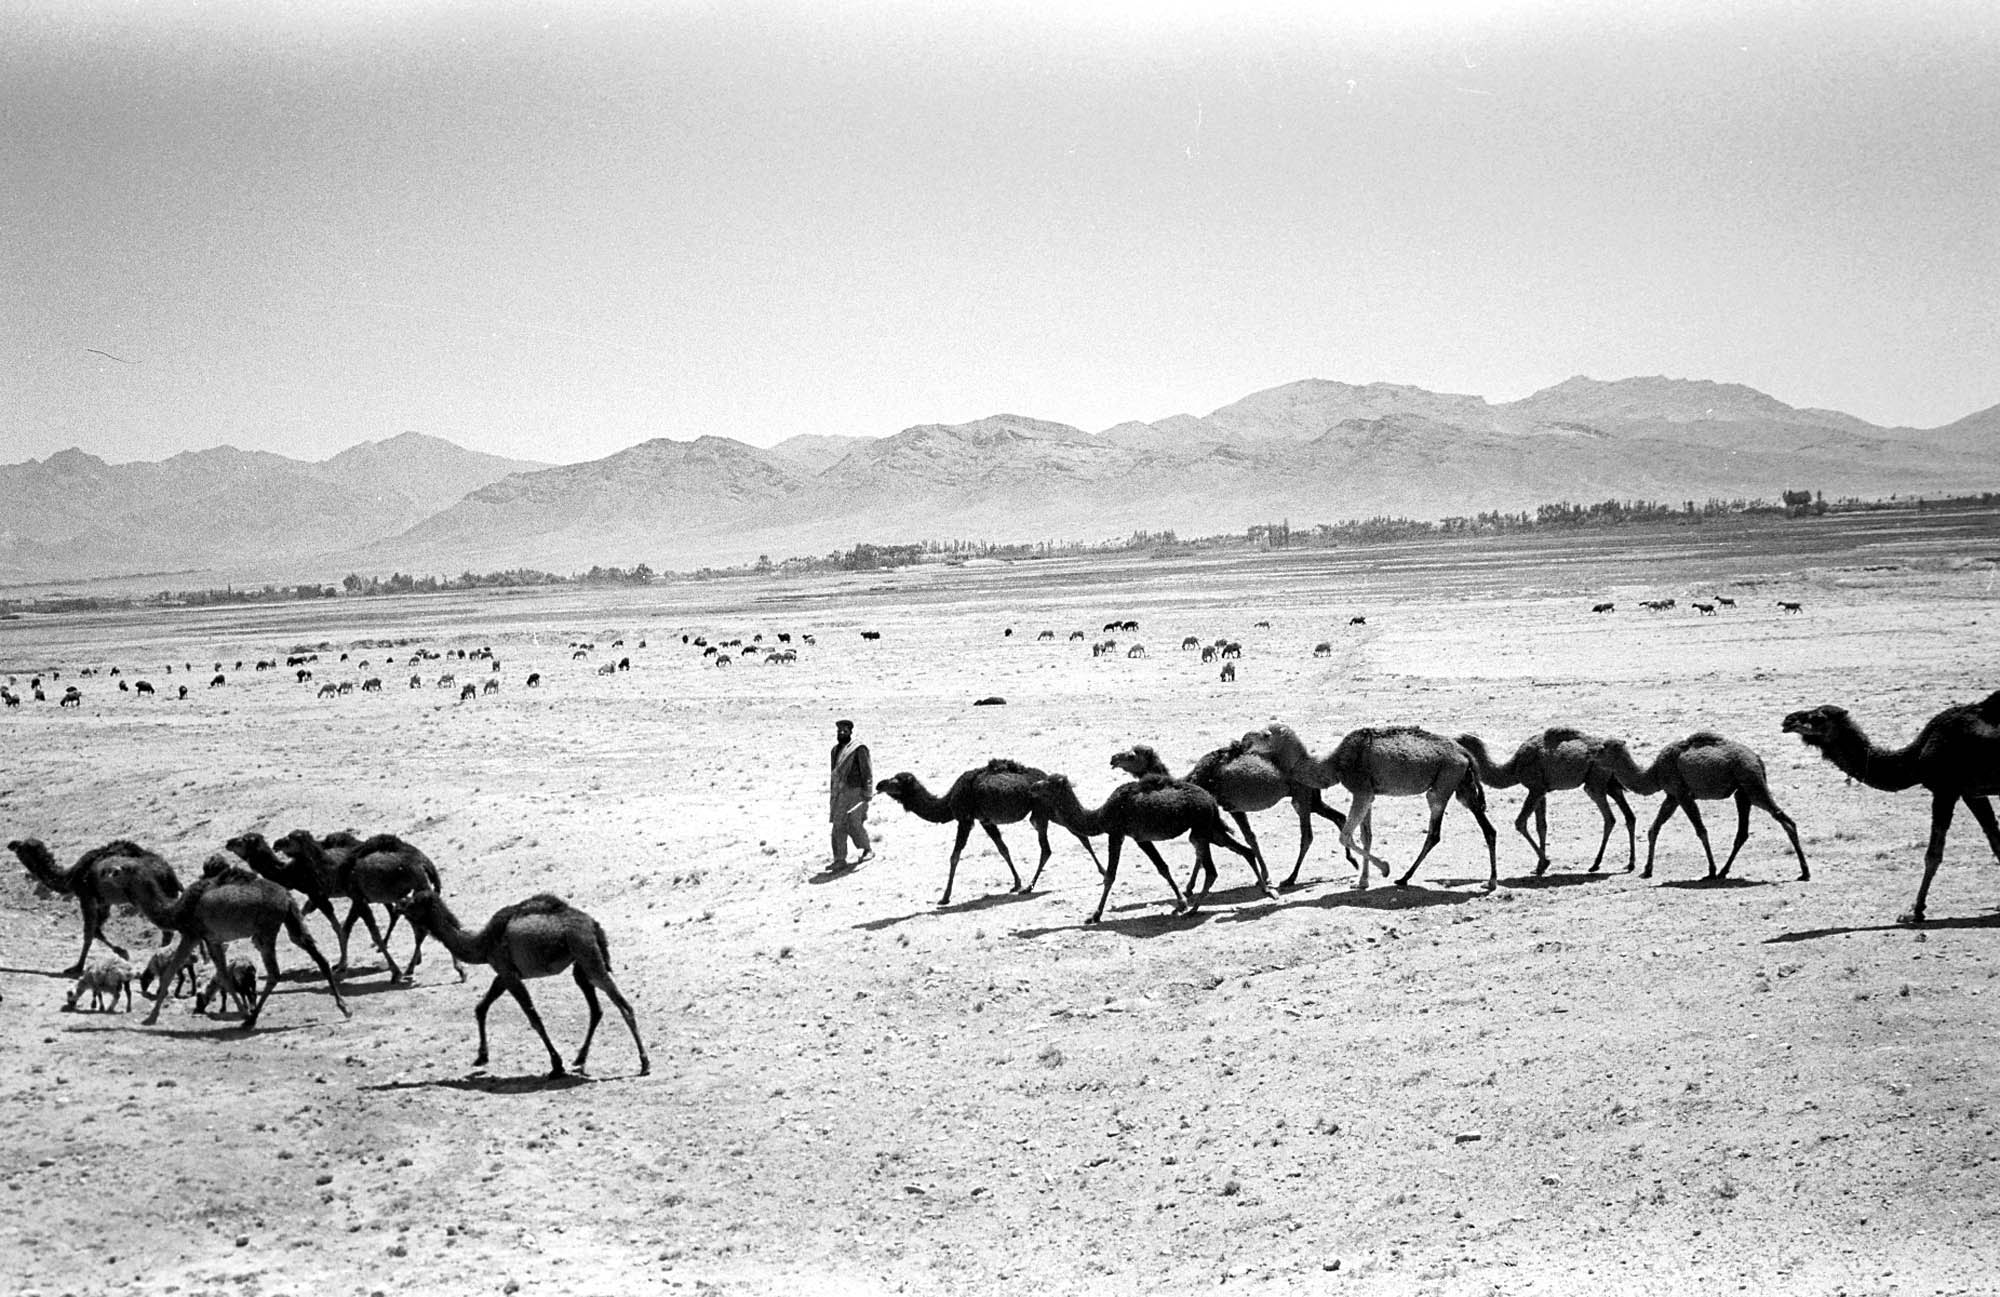 Life under the Taliban: A man walks with his camels in Wardak province in Afghanistan May 2000.